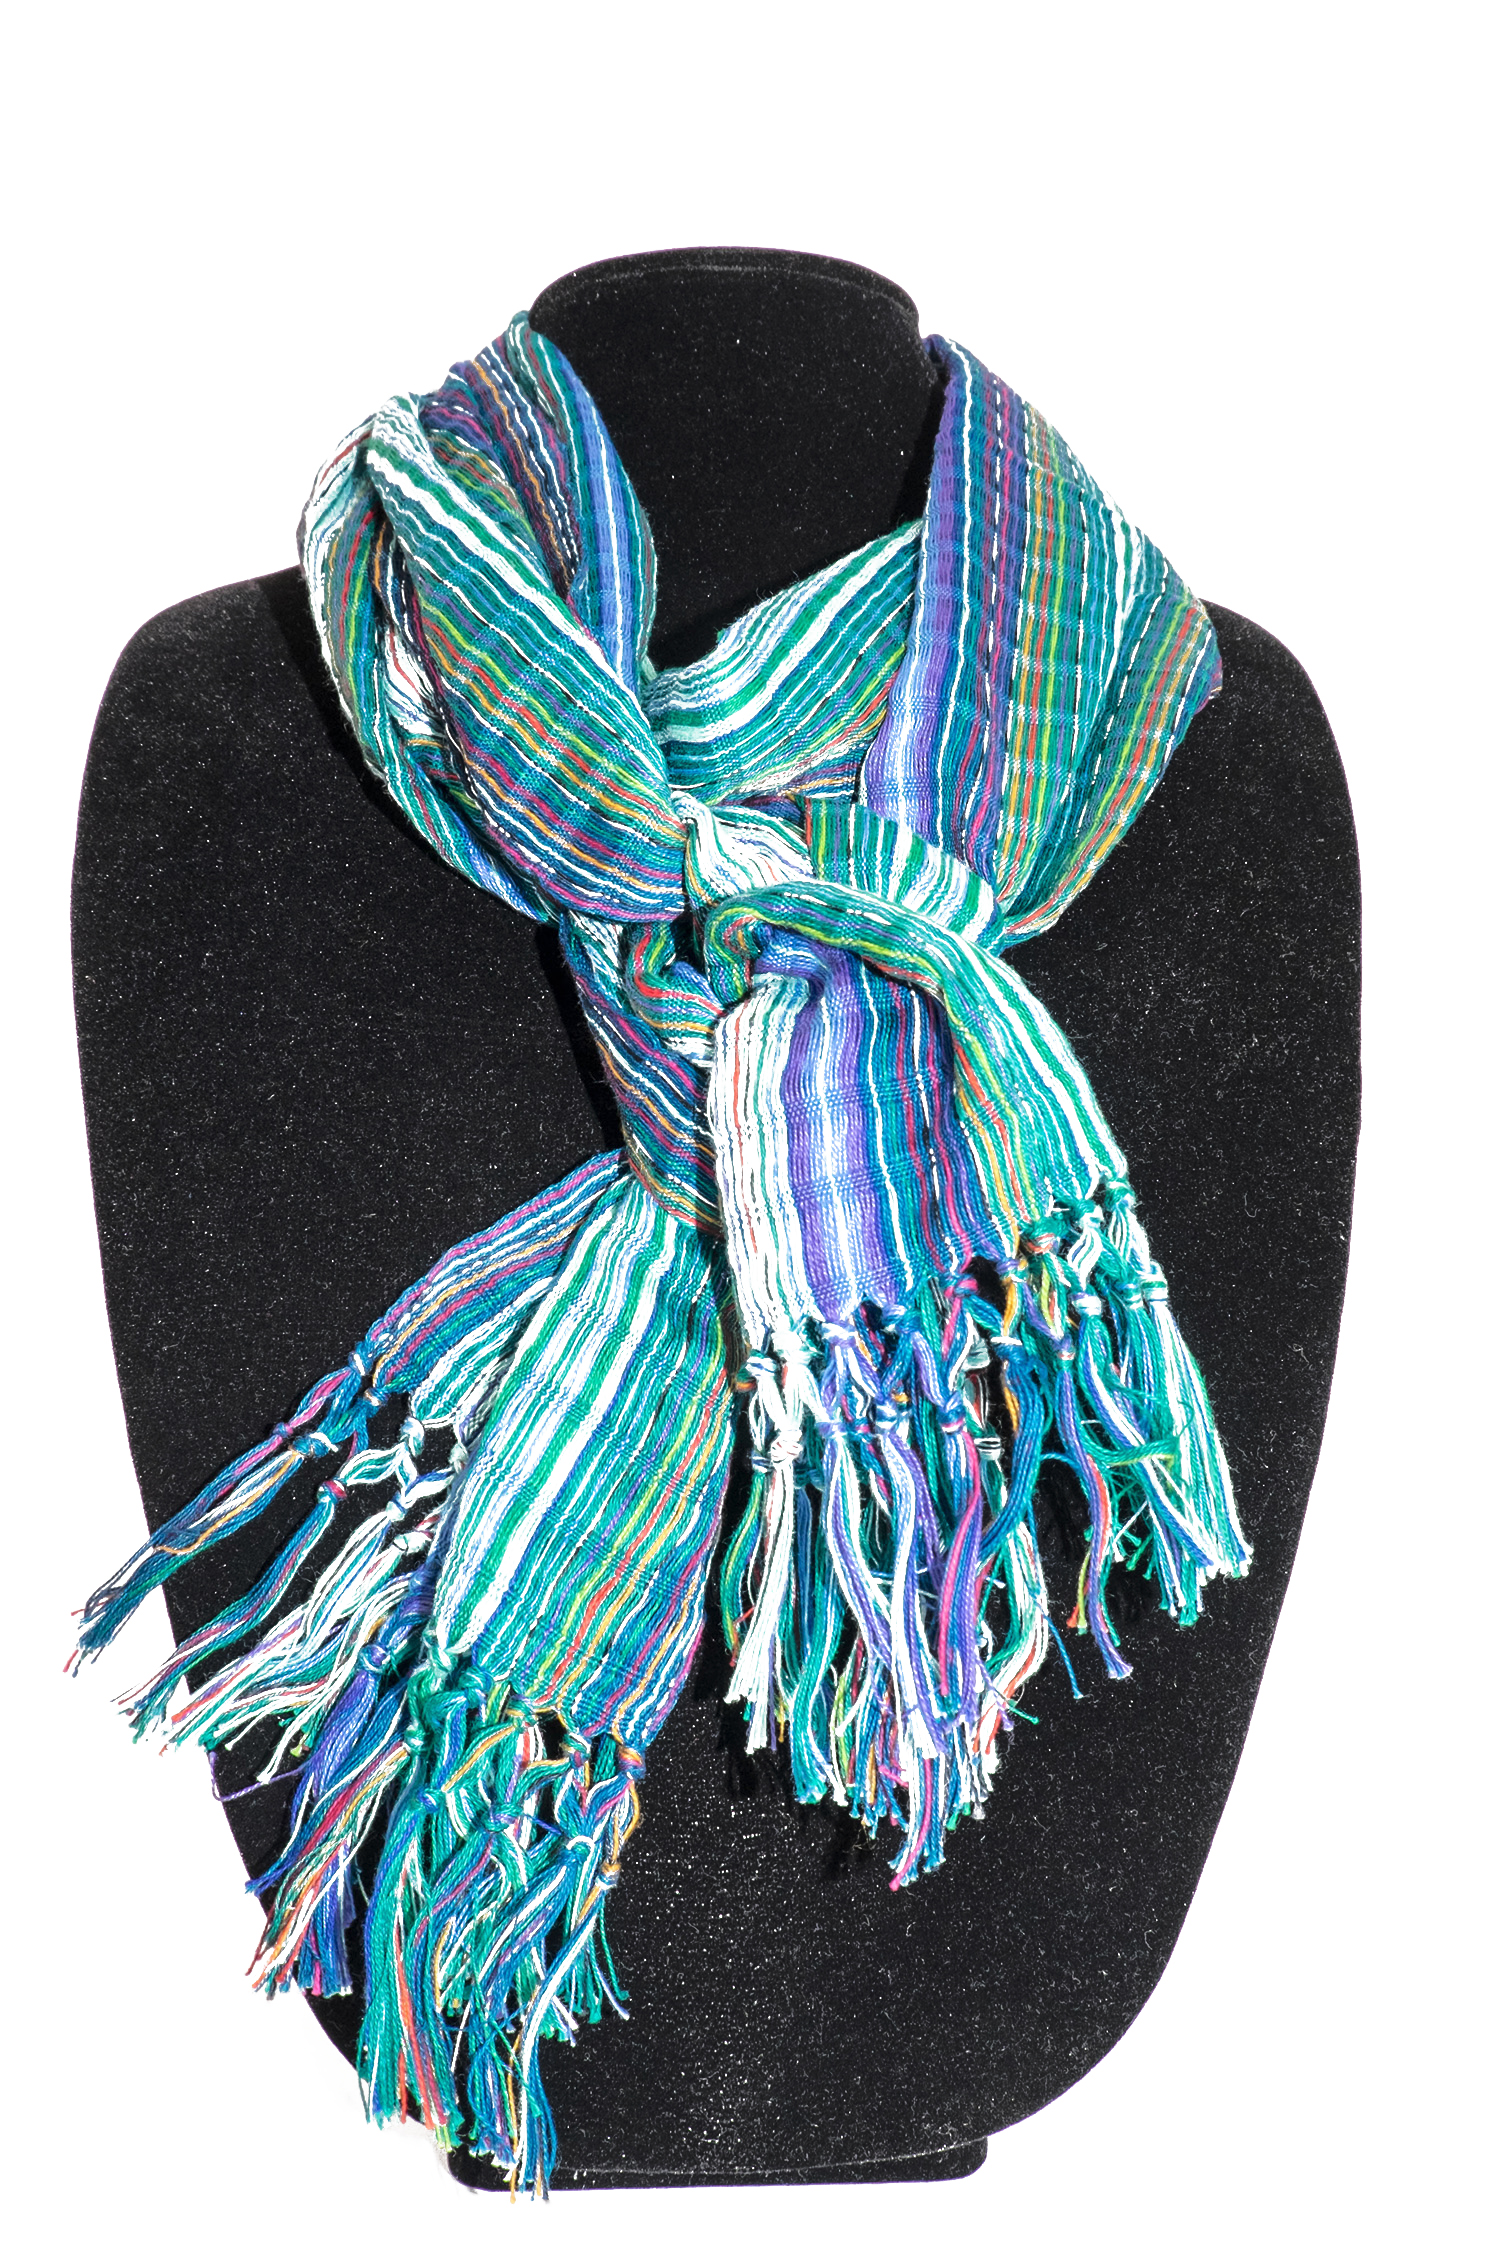 Greens and Purples Cotton Scarf     $19.00